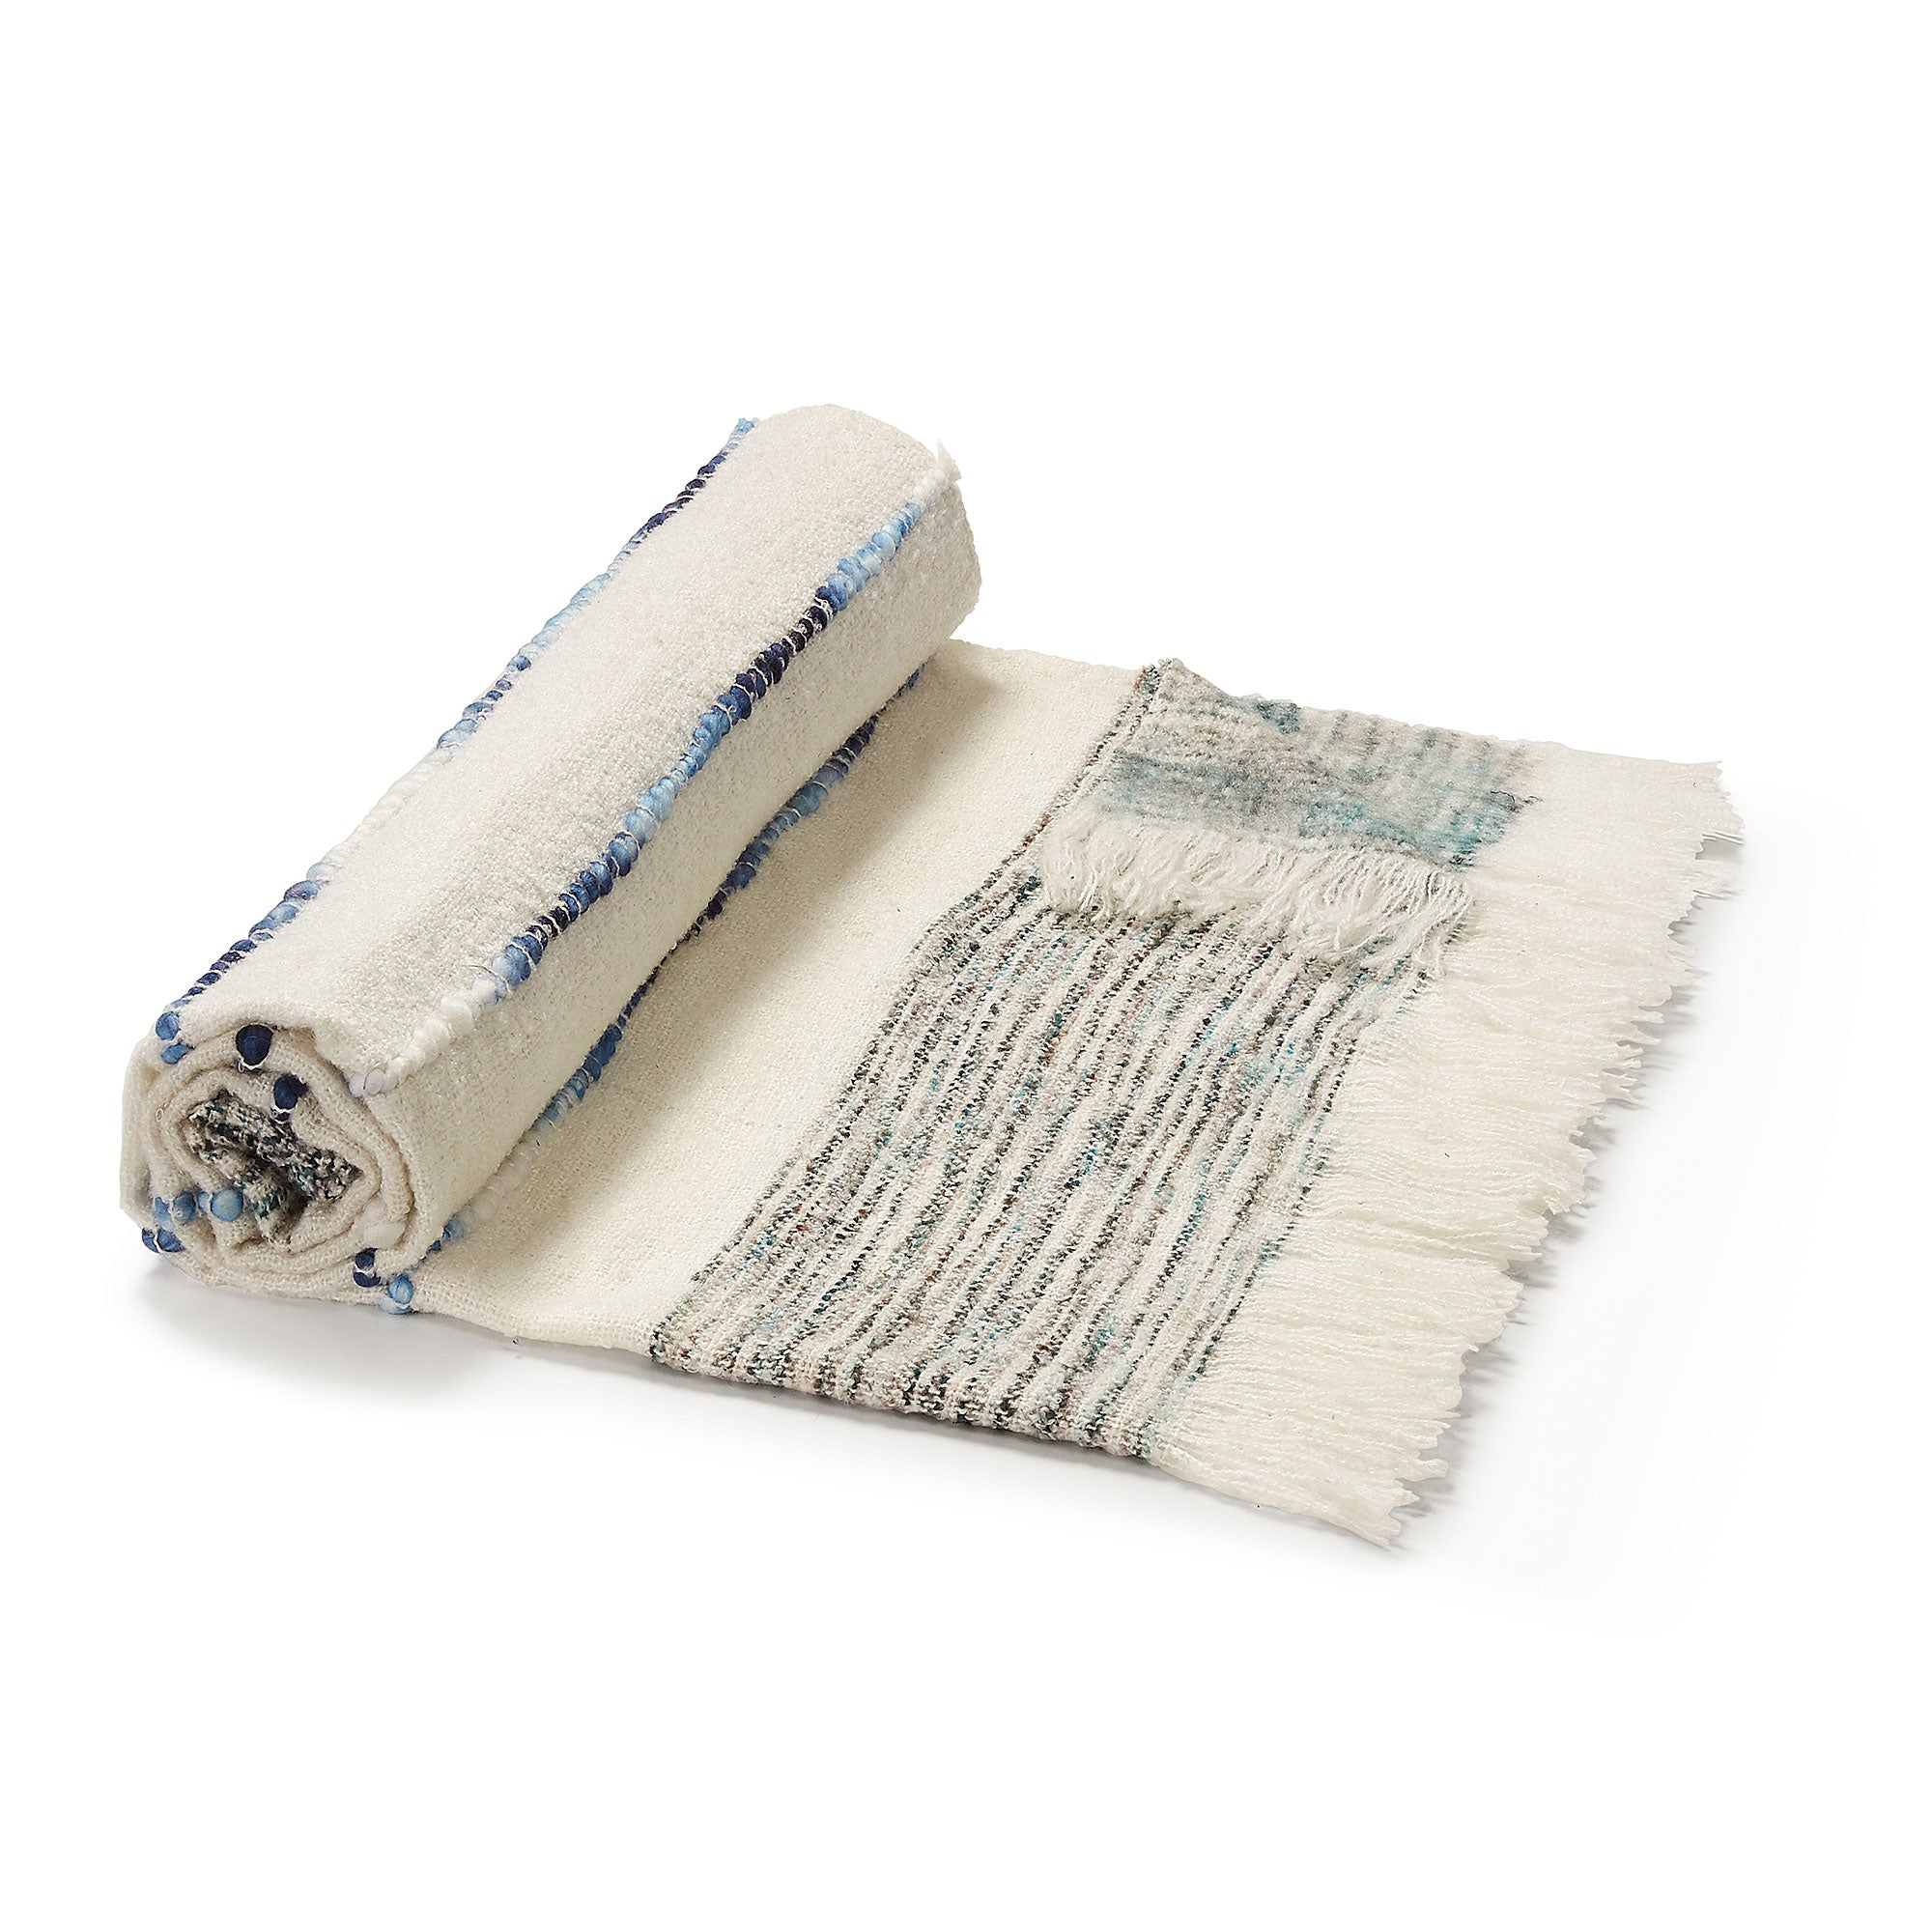 Taylah Handmade Blanket - White and Blue Plaid Blanket with Fringes 125 x 150 cm, Blanket - Home-Buy Interiors